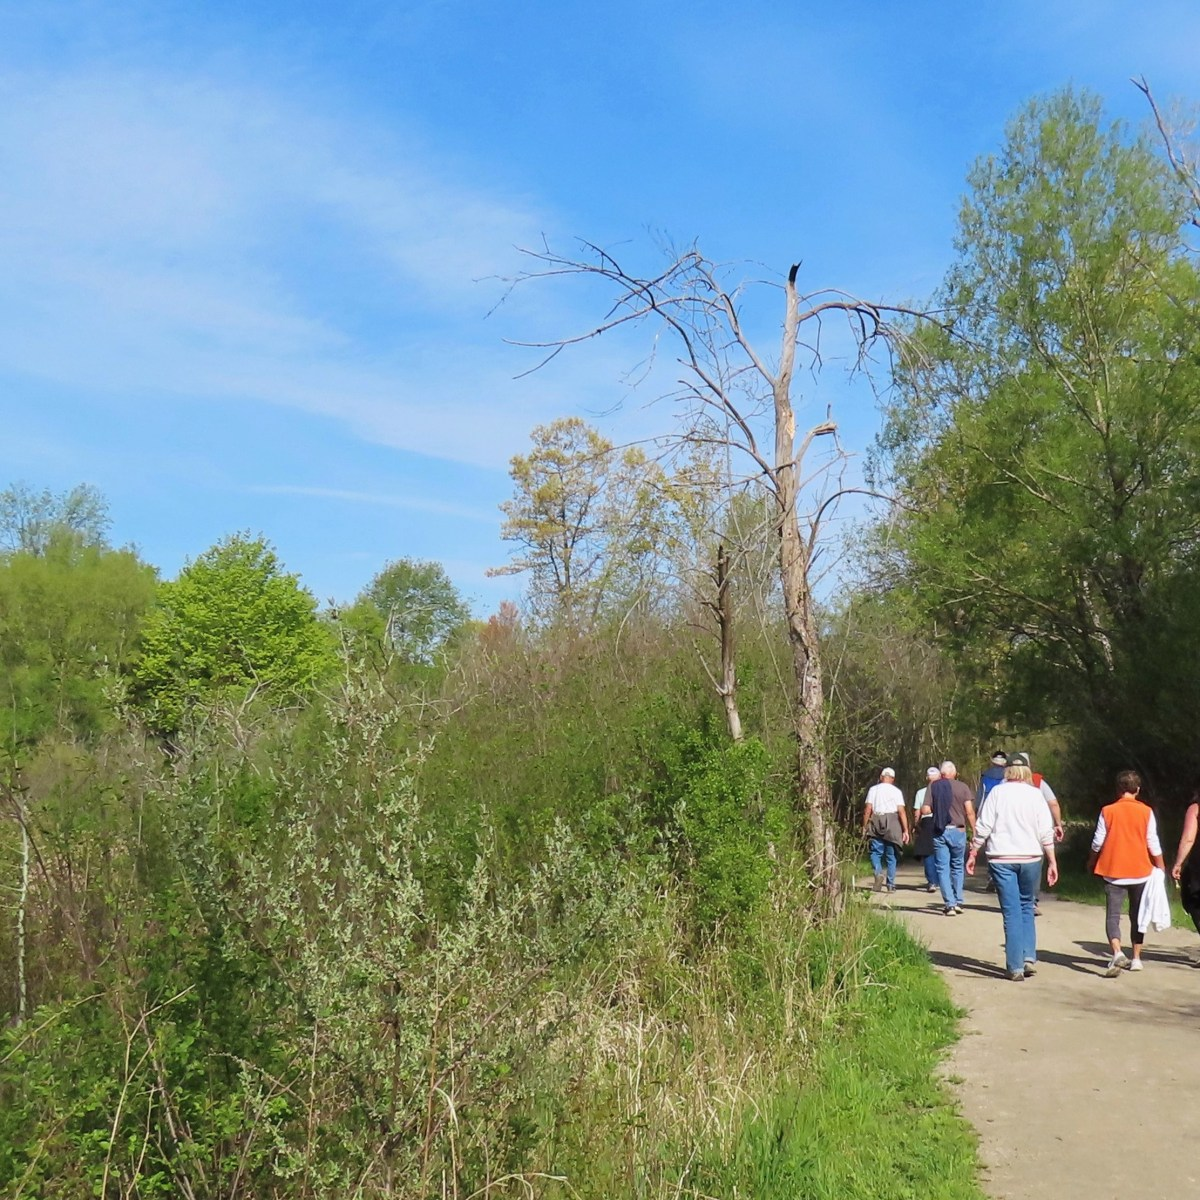 A group of people walking down a dirt trail